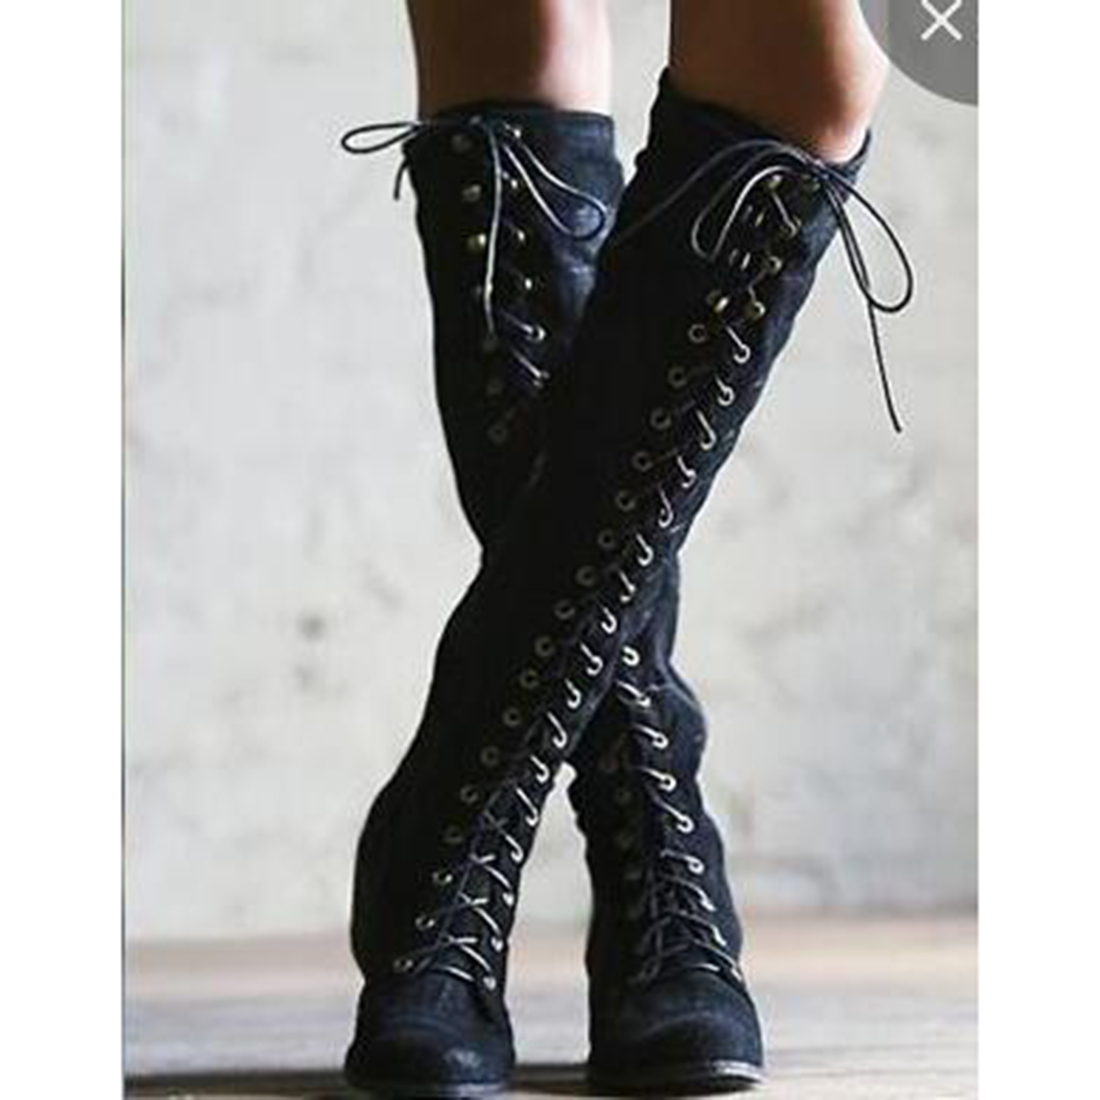 Women Knee High Boots Leather Fashion Lace Up Round Toe Low Heel Women Rivet Motorcycle Boots Big Size